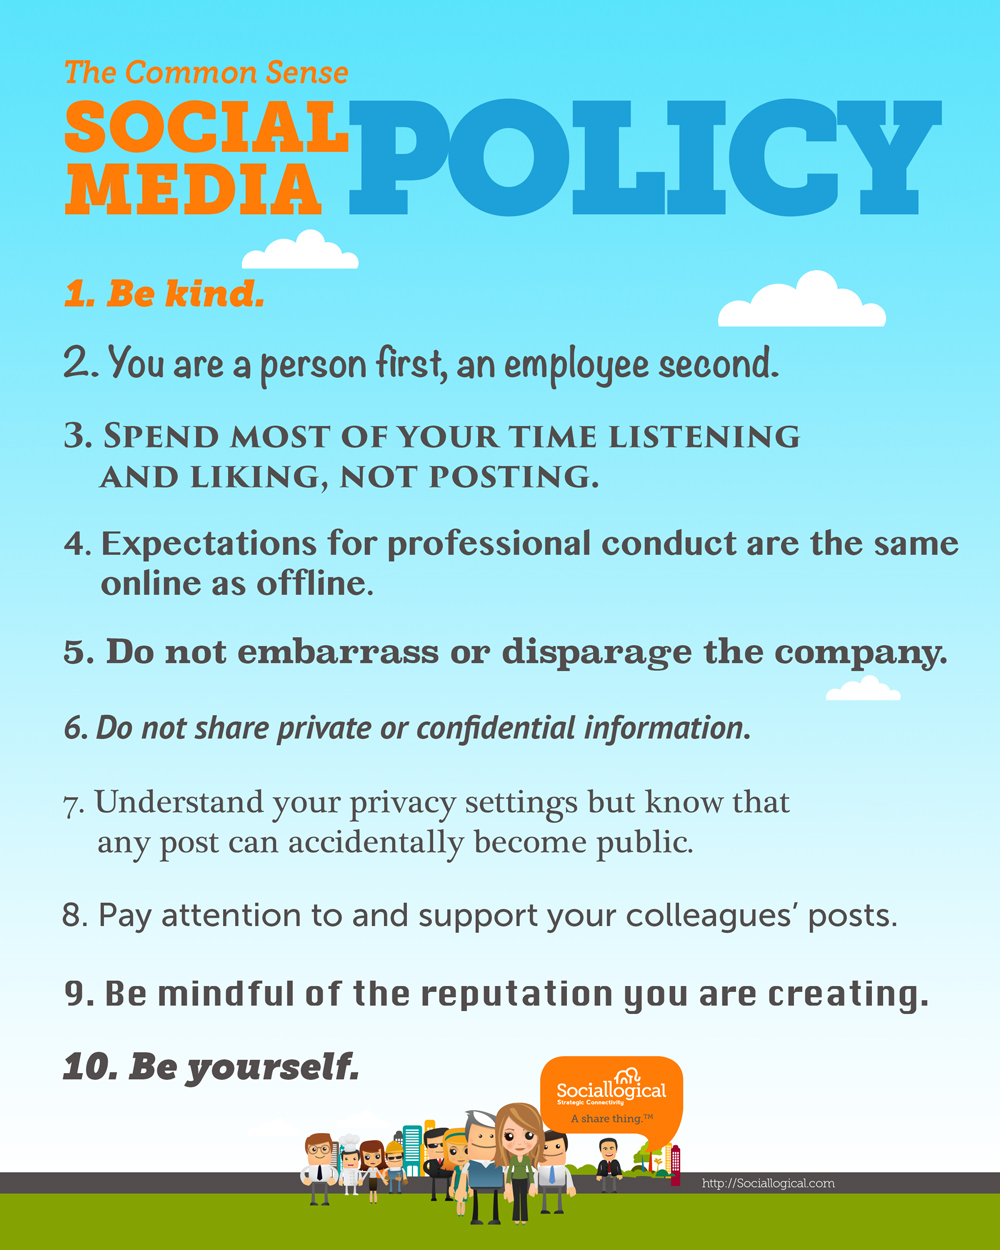 employee social media policy template - the 10 point social media policy everyone will understand